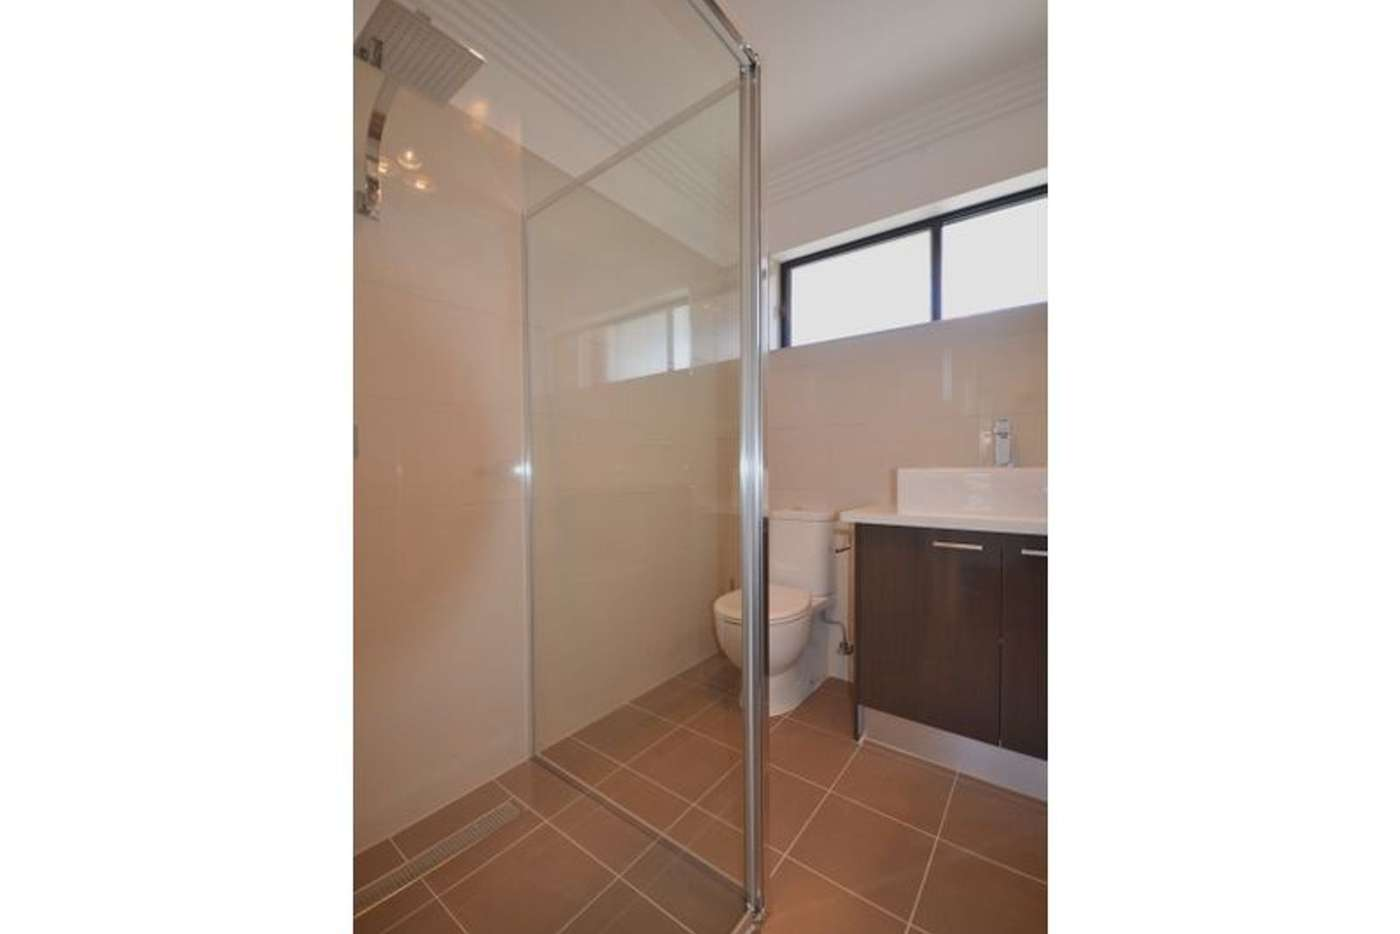 Seventh view of Homely house listing, 1/9A Smith Street, North Bendigo VIC 3550